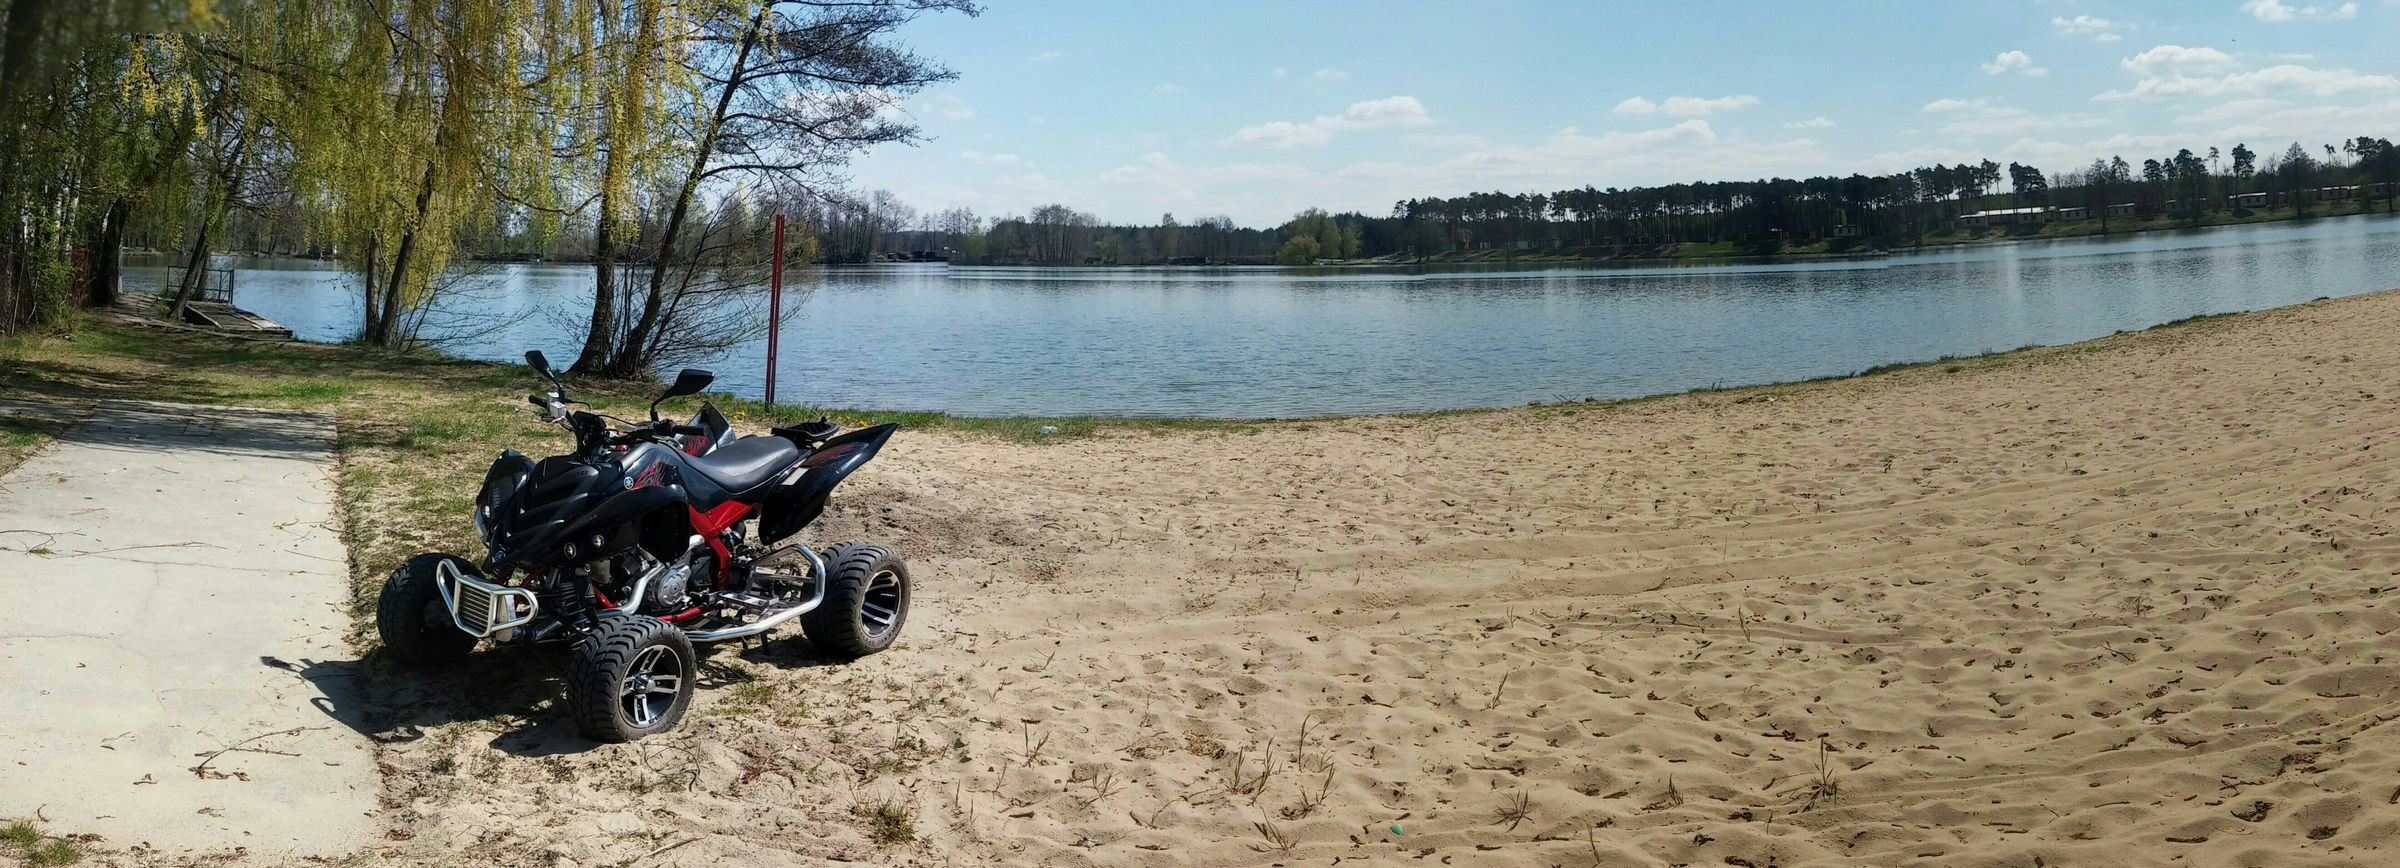 RAPTOR 700 Yakahosu Beautiful Day Relaxing Lovely Weather Yamaha Turbo Beach Nature Lake